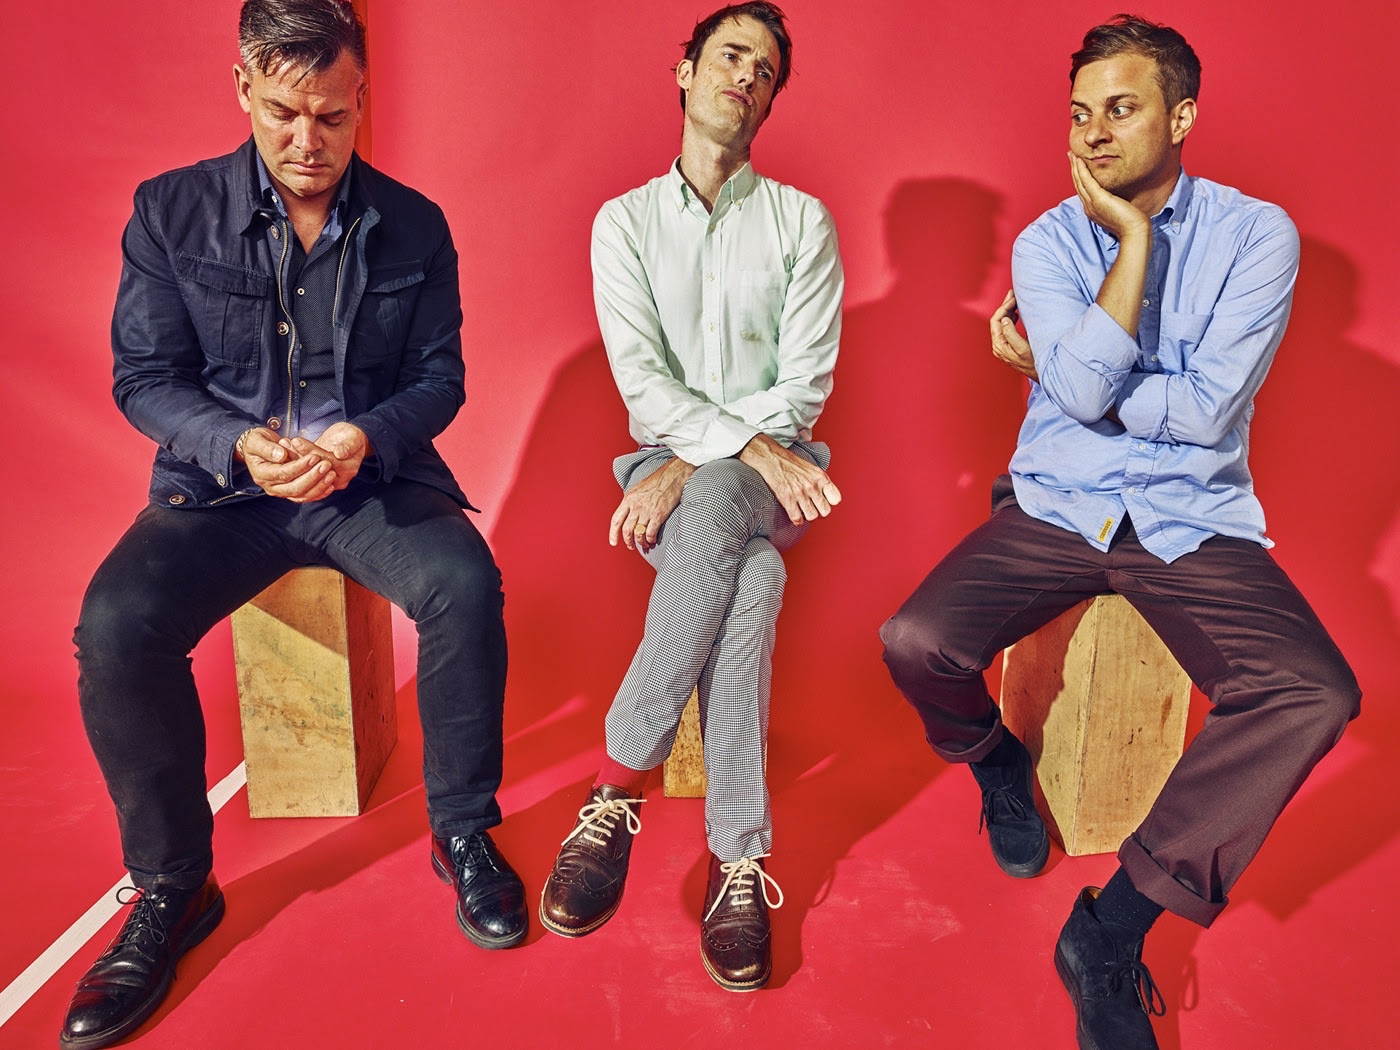 Battles have announced new live dates. Their world tour starts on August 7th at Ypsigrock in Sicily Italy.